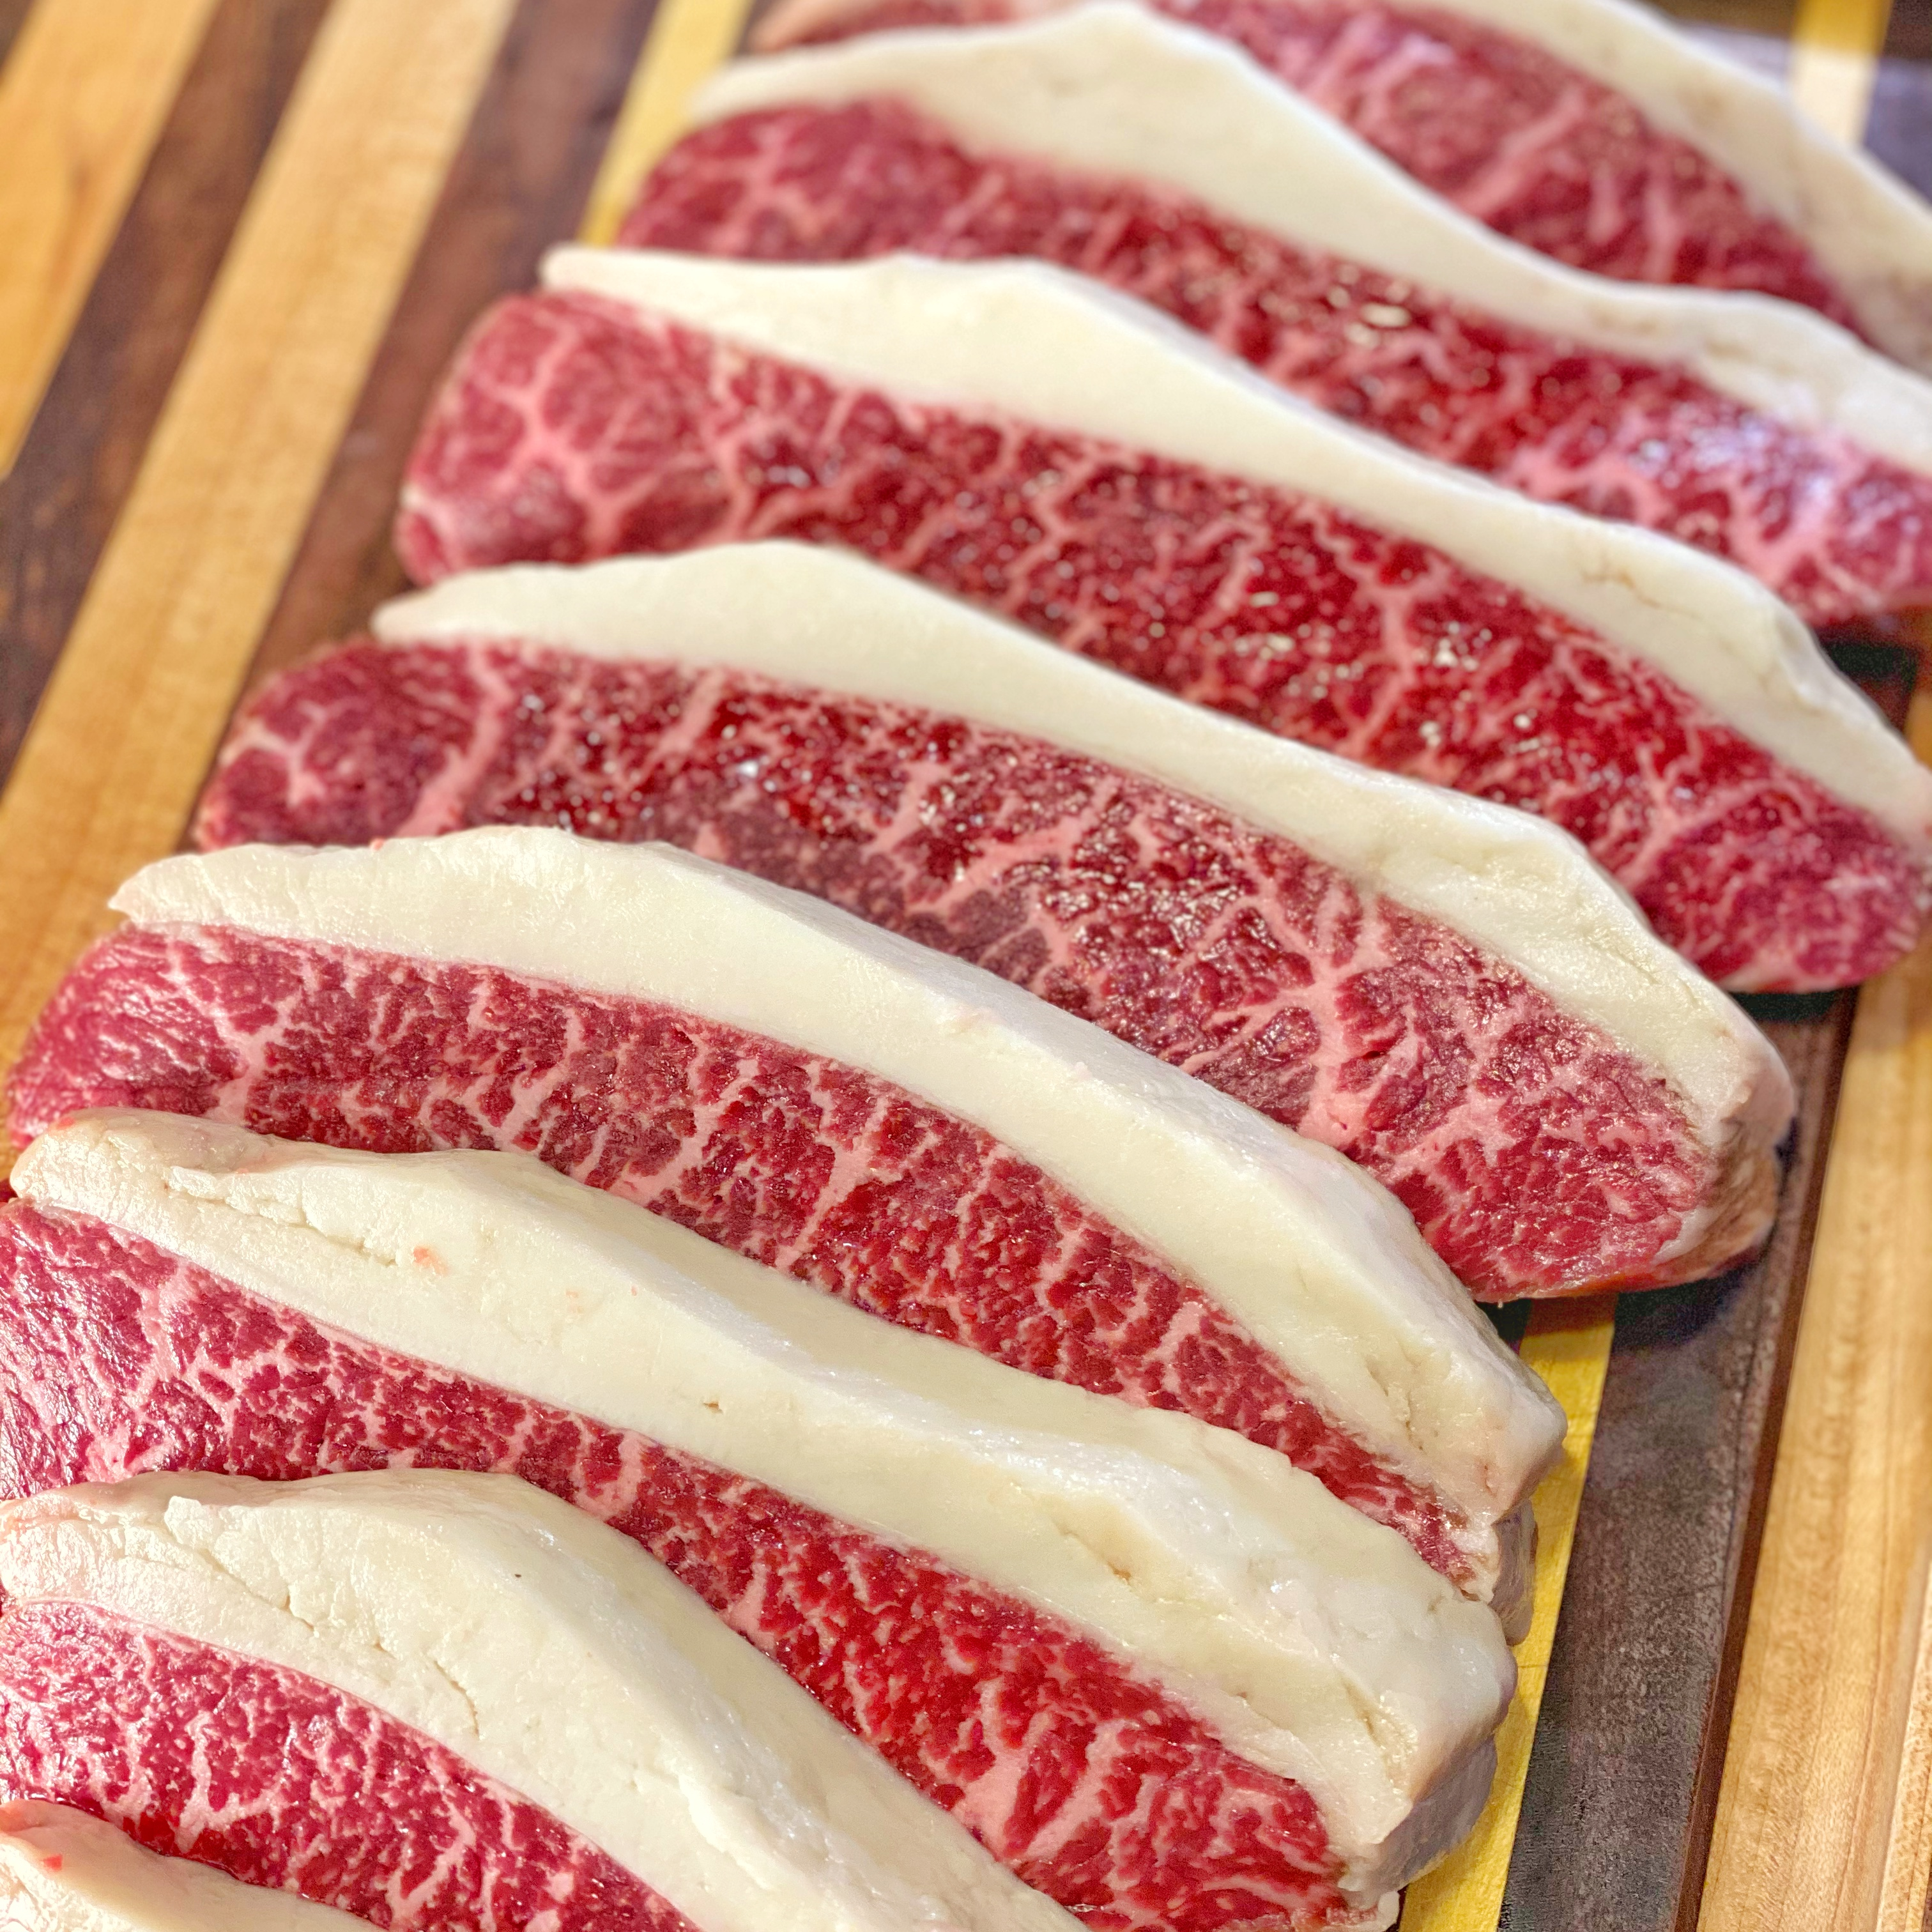 slices of meat on cutting board